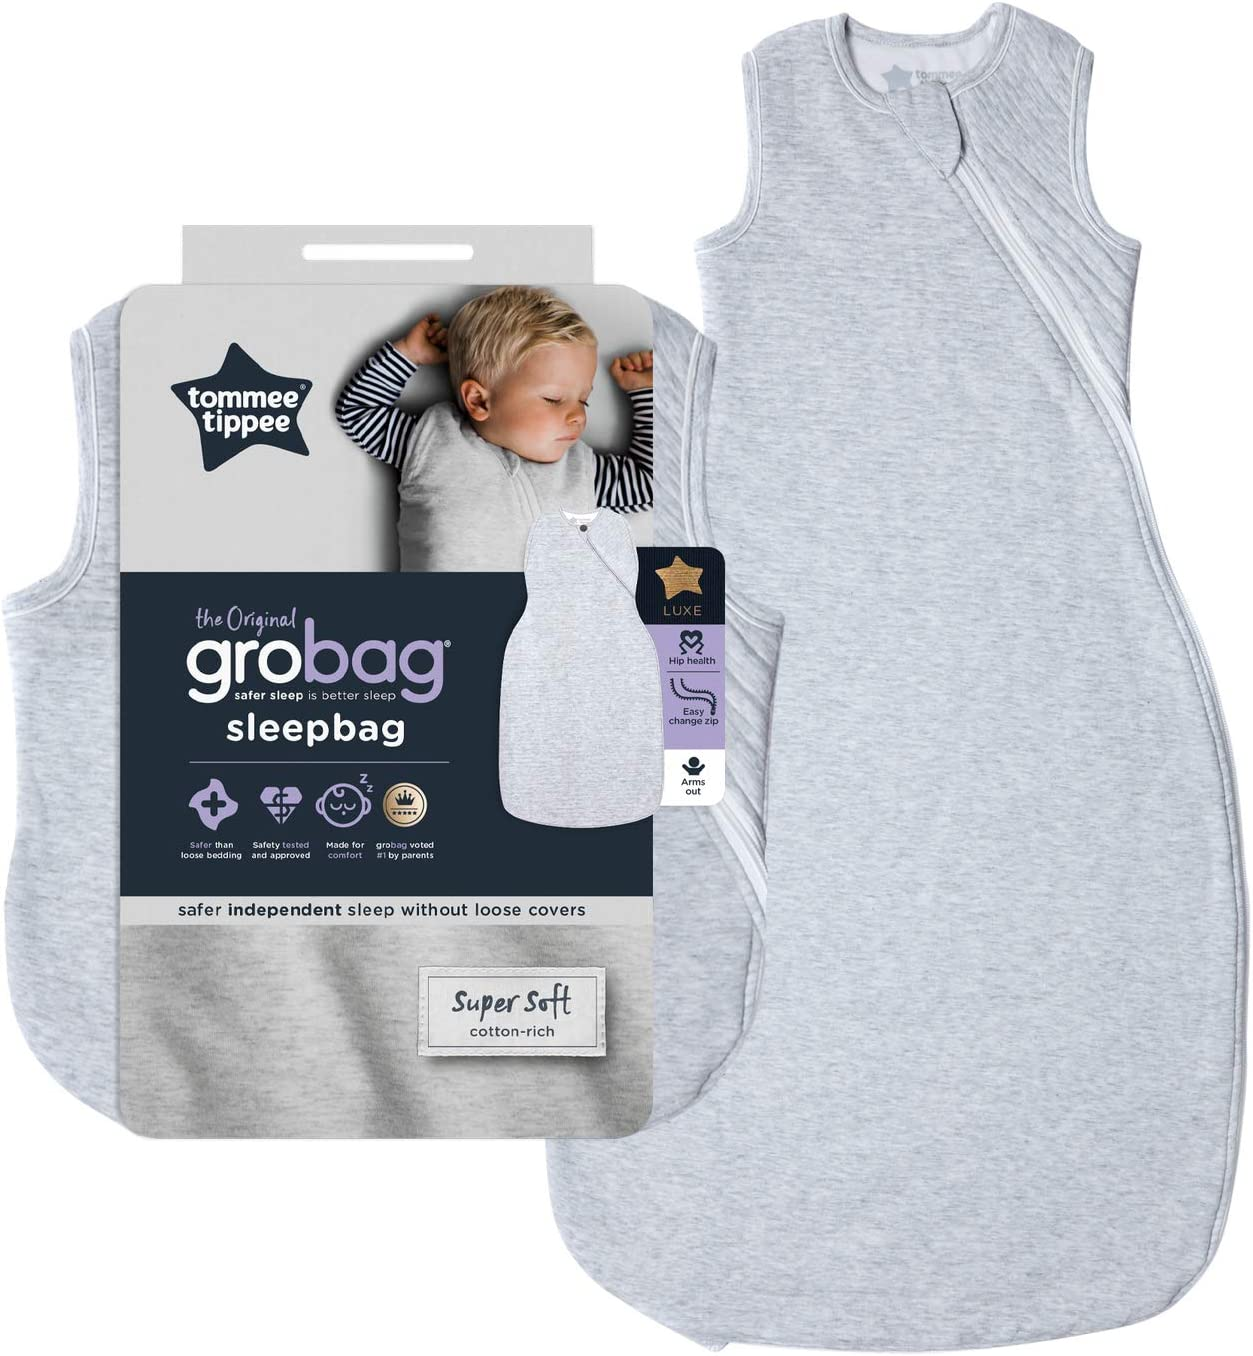 Tommee Tippee The Original Grobag 18-36 month 2.5 Tog Baby Sleep Bag Classic Marl